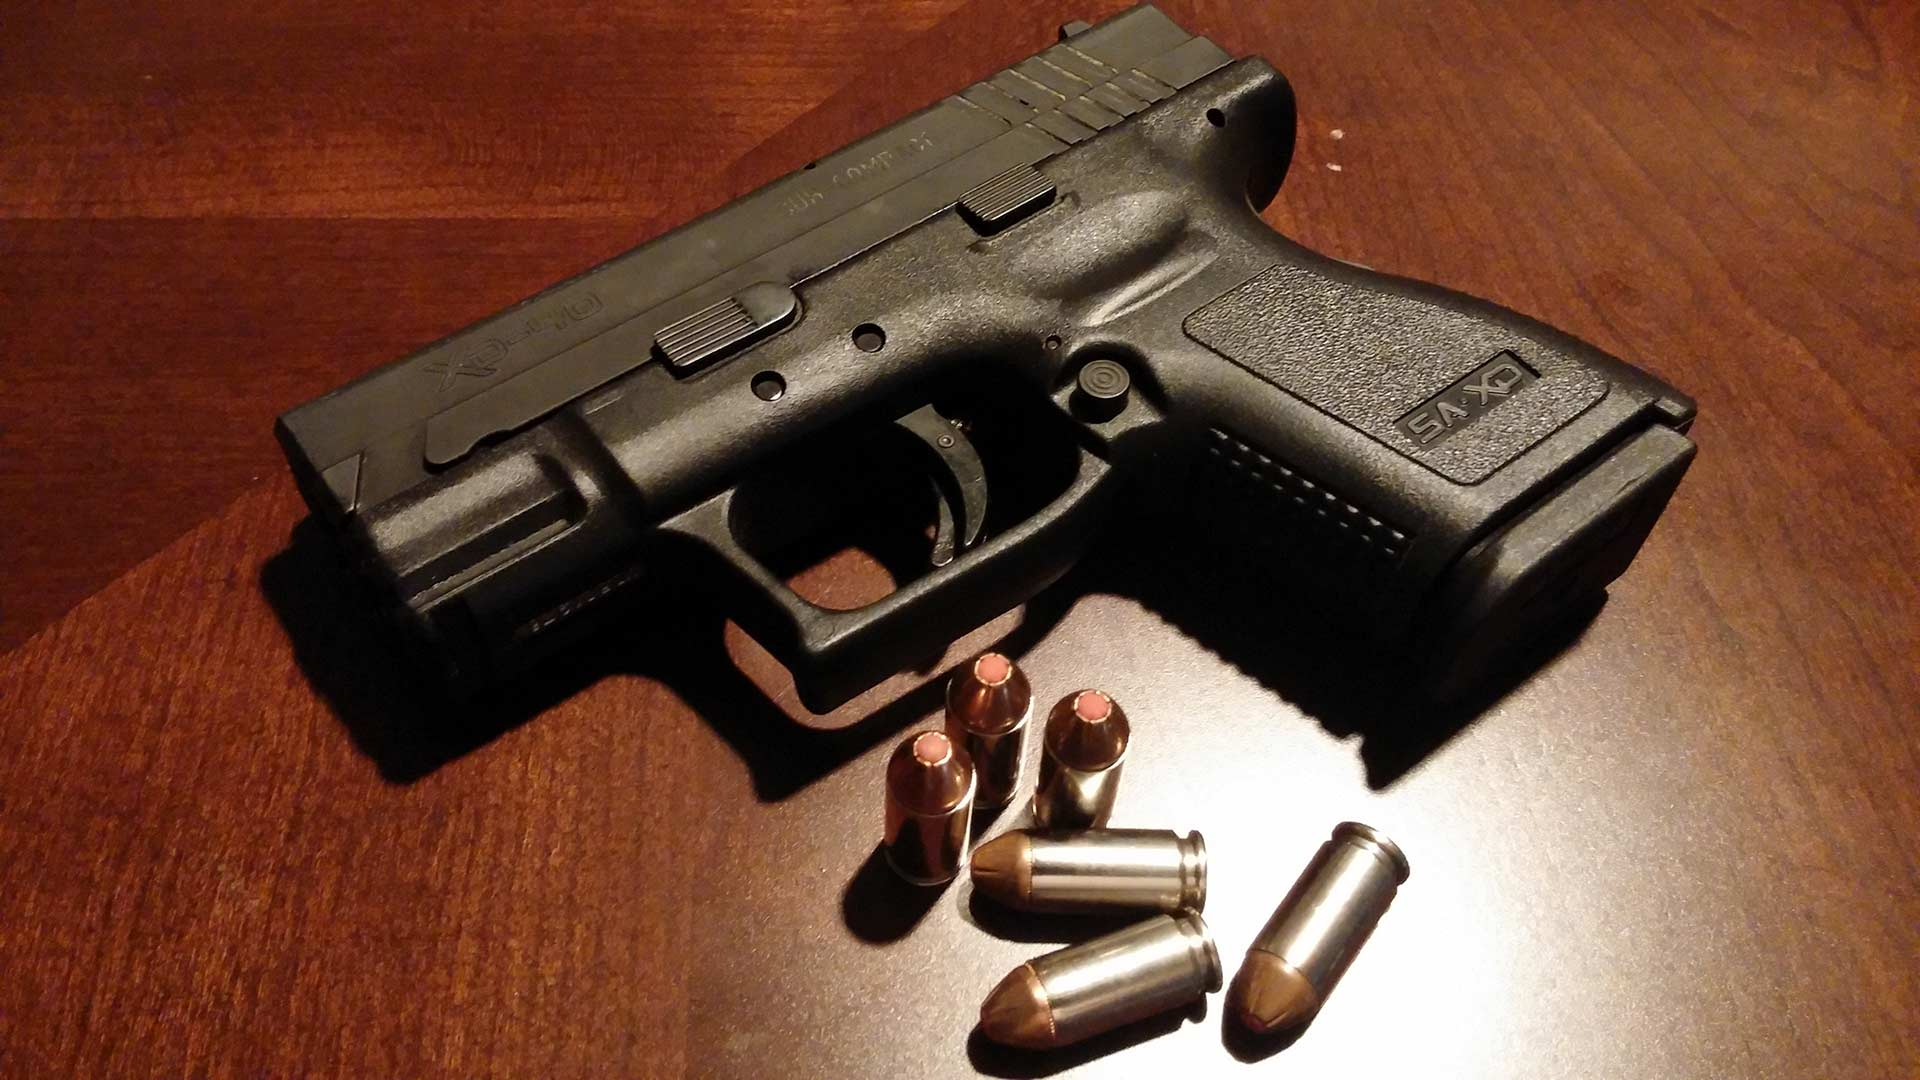 A handgun and ammunition.